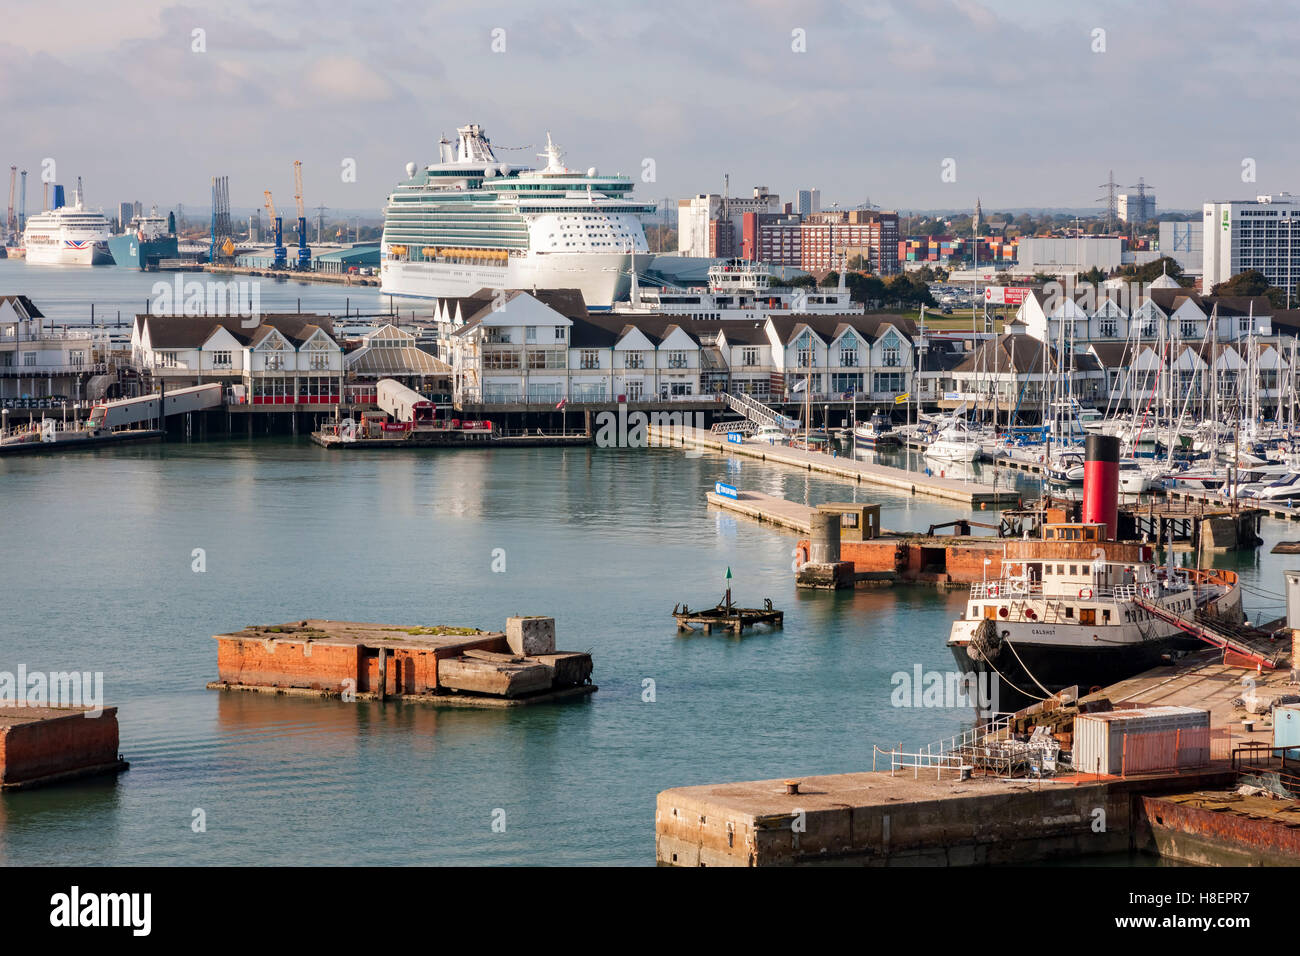 Veteran tug boat Calshot and Navigator of the Seas moored in Southampton, u.k. - Stock Image